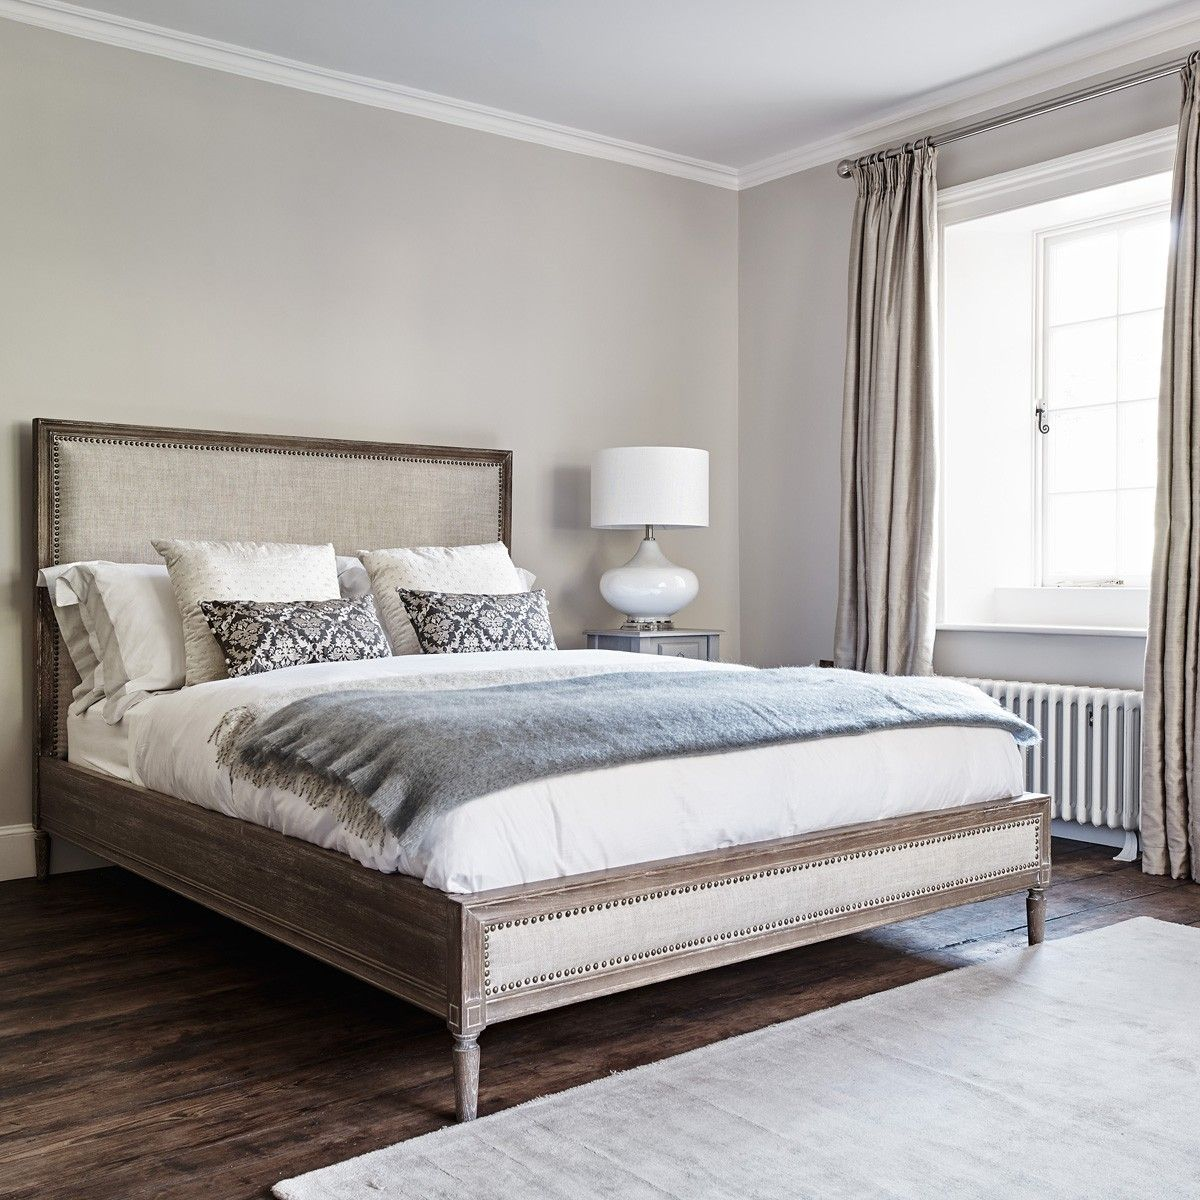 How Big Is A Super King Bed Boston Bed Superking Natural Linen In 2019 Beddy Bye King